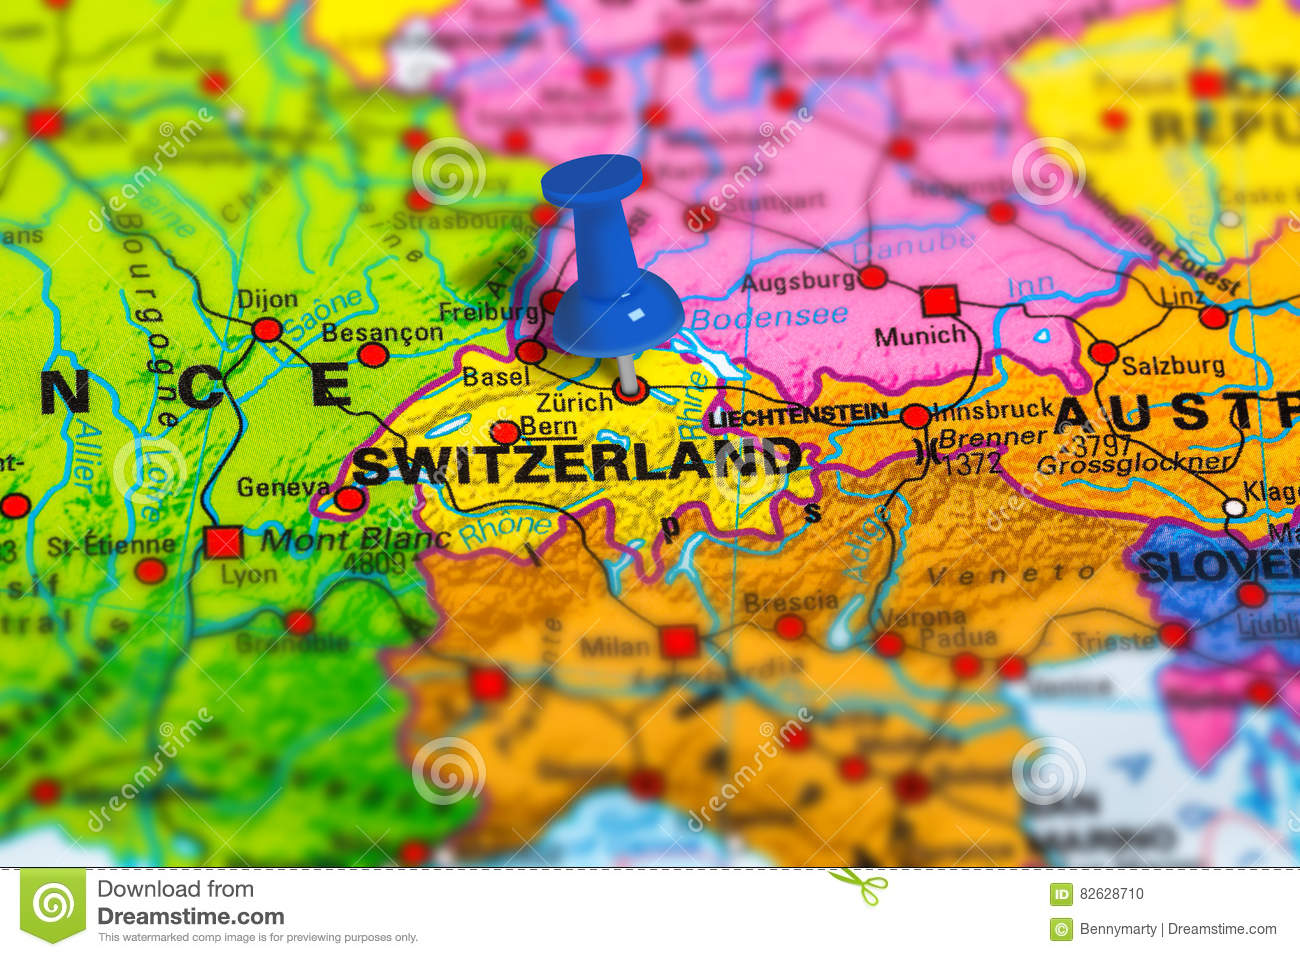 Zurich Switzerland map stock photo. Image of marking - 82628710 on montreux switzerland map, rhine river map, seoul korea map, geneva map, zermatt village map, edinburgh scotland map, europe map, zurich google map, france map, zurich language, madrid spain map, austria map, zurich world map, bern switzerland map, brugg switzerland map, basel switzerland map, pfaffikon switzerland map, barcelona map, paris switzerland map, switzerland on a map,